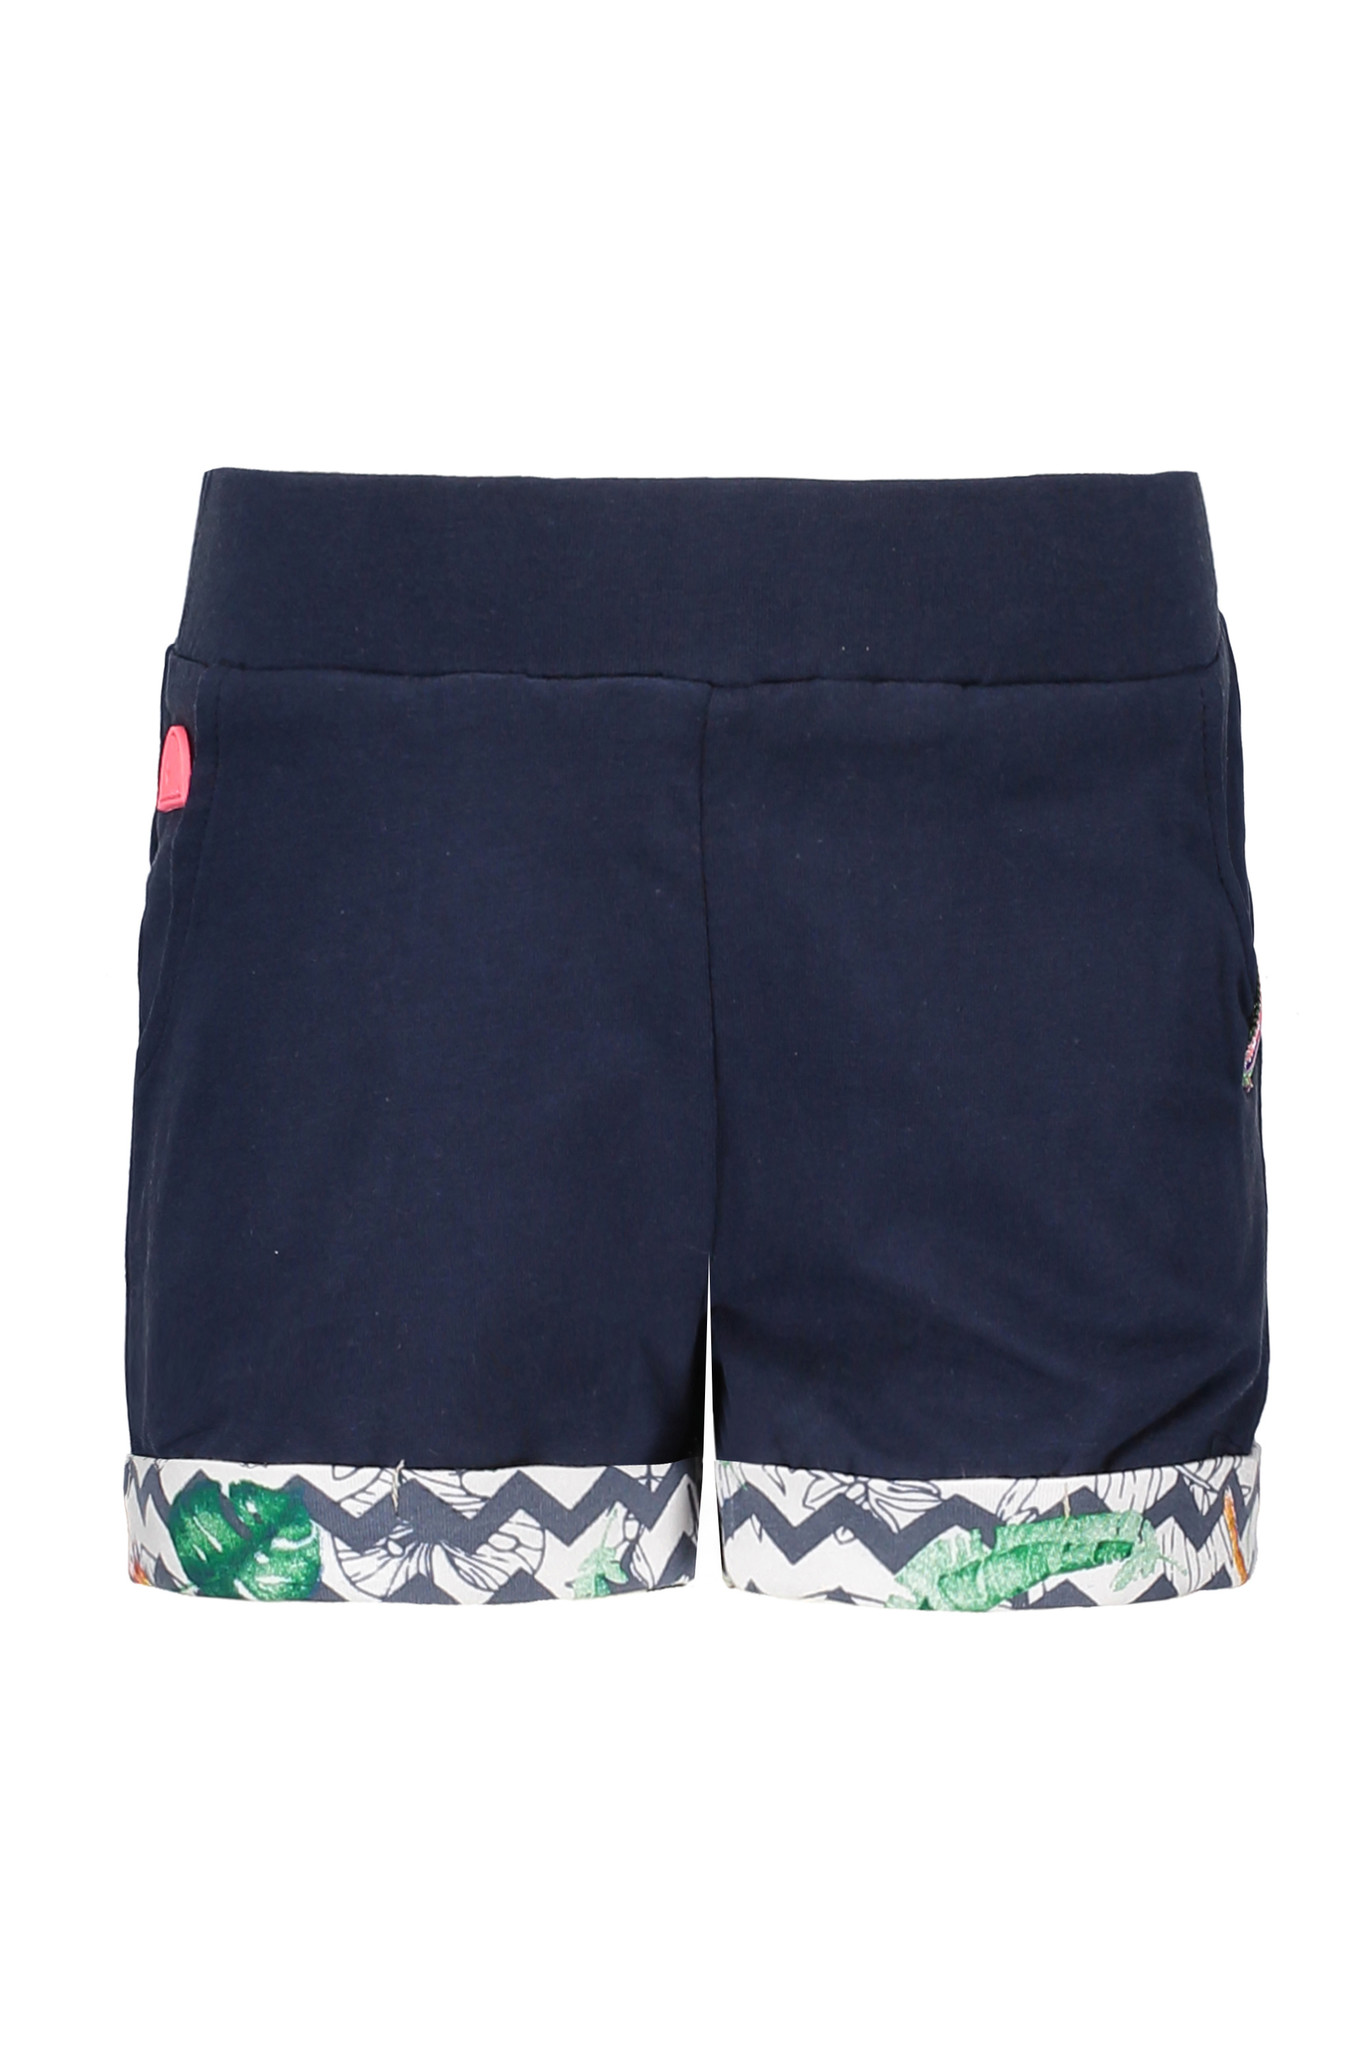 B.Nosy B.Nosy short jersey rolled-up pants midnight blue